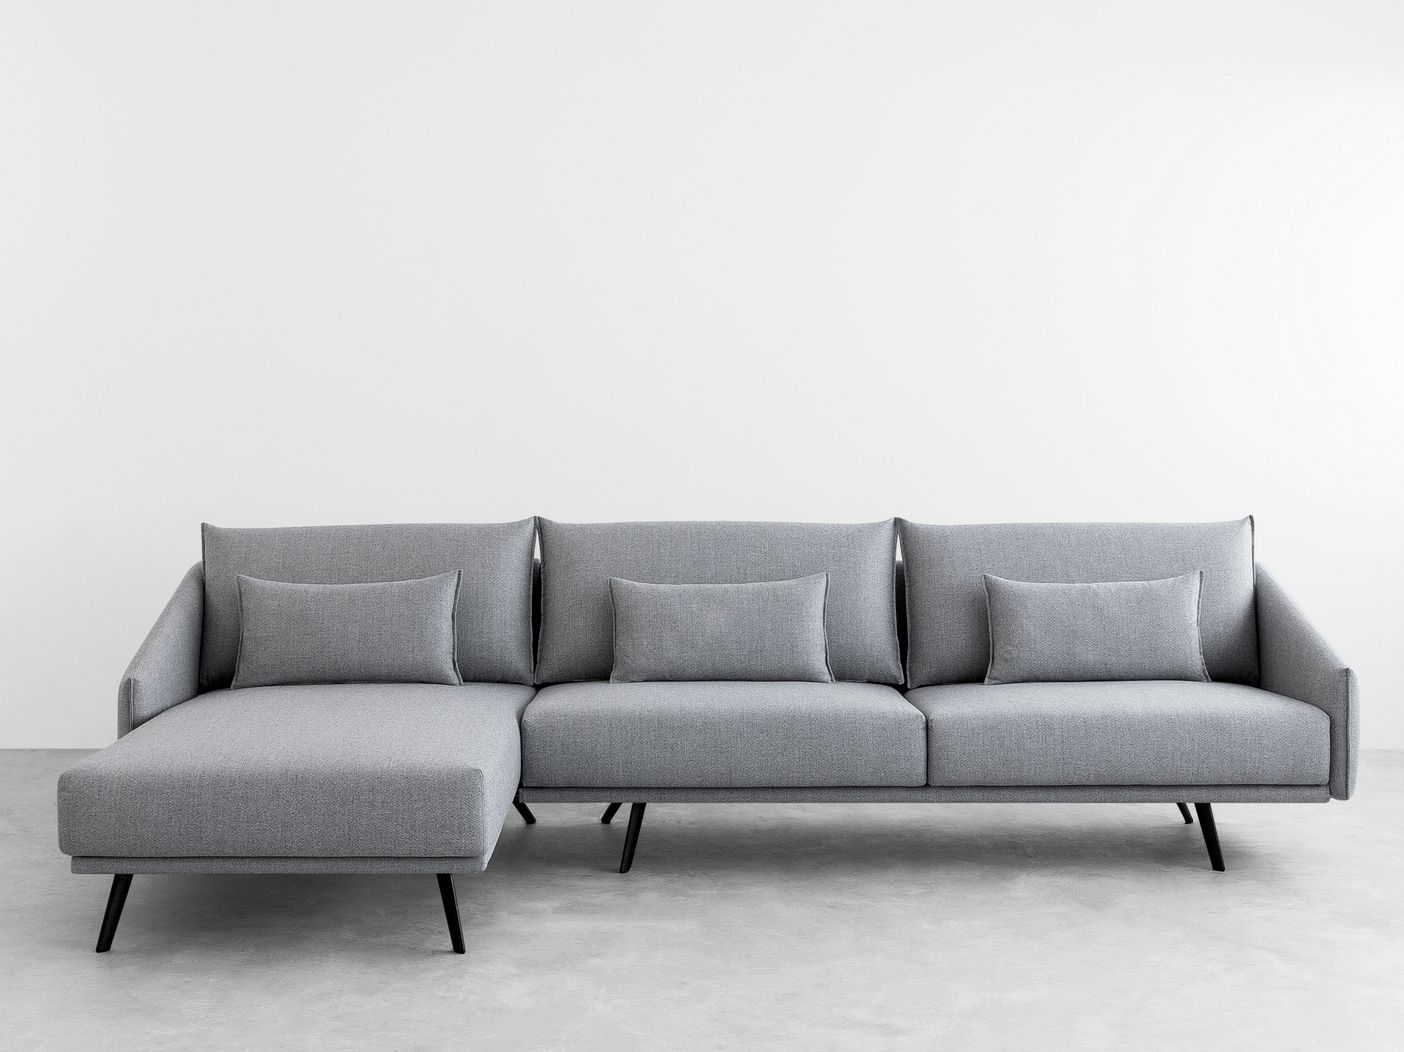 COSTURA Sofa with chaise longue Costura Collection by STUA design ...